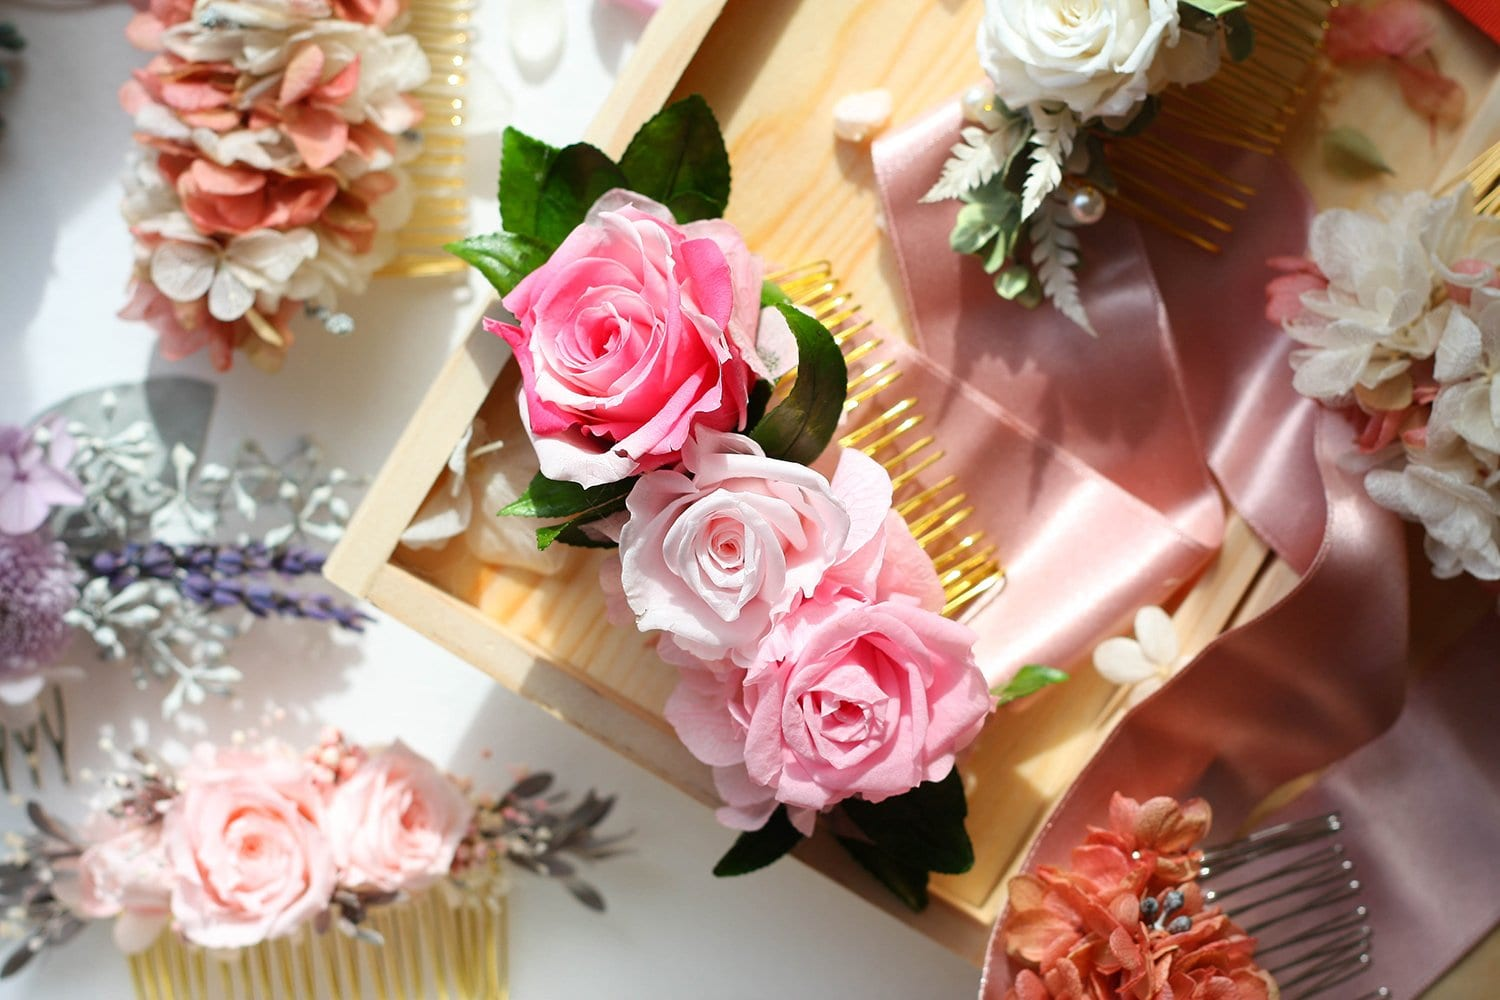 Buy Flowers for Memorable Events in Singapore